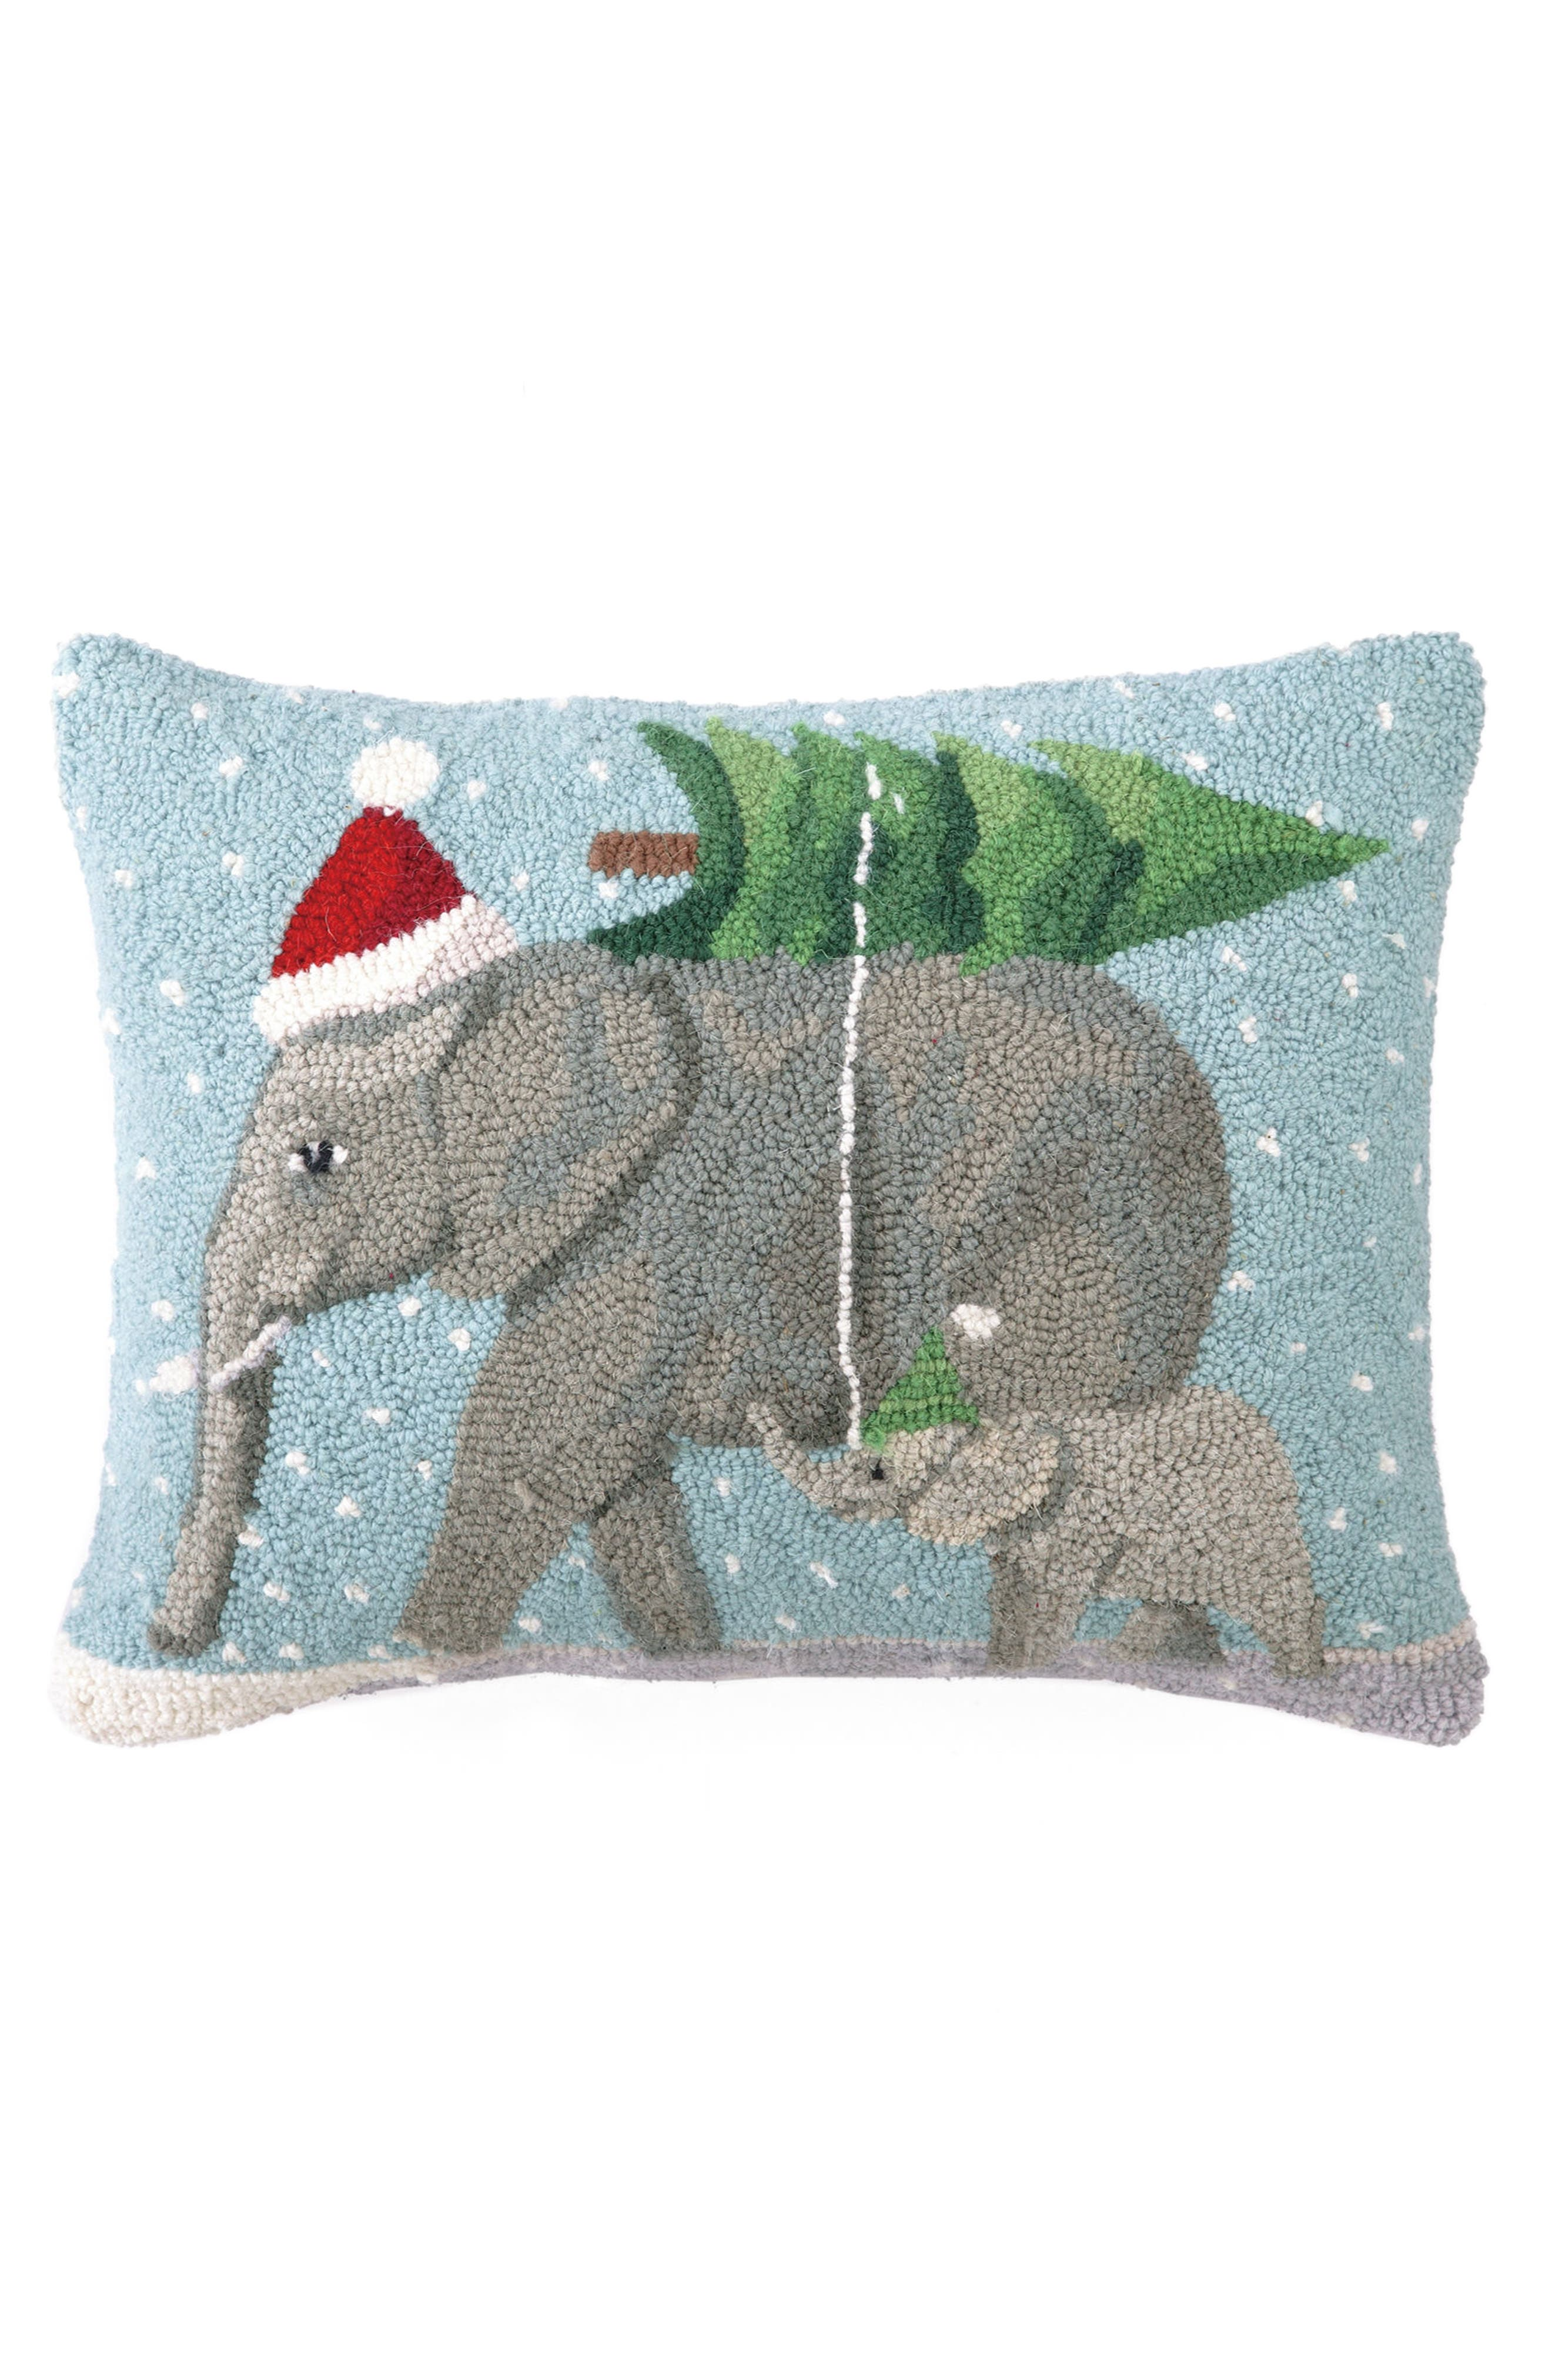 Main Image - Peking Handicraft Christmas Elephants Hooked Accent Pillow